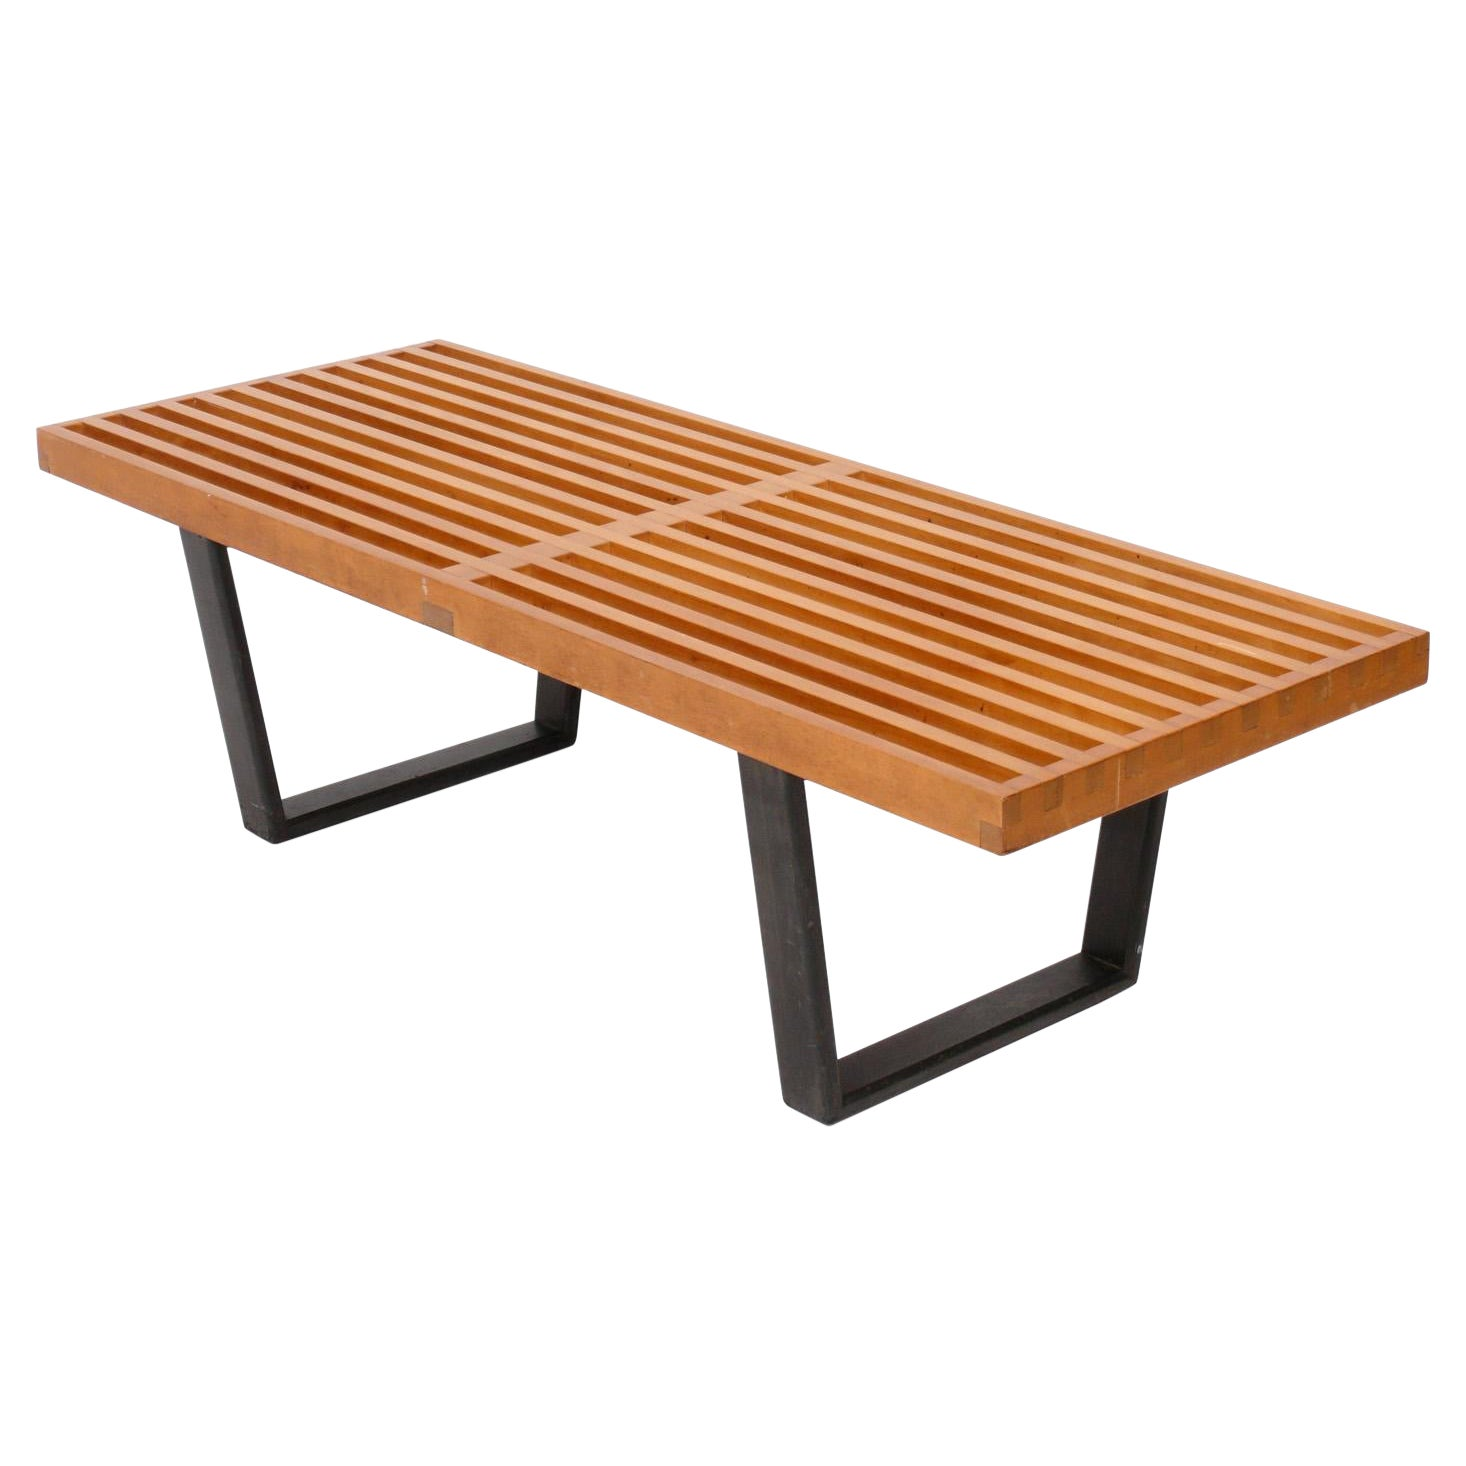 George Nelson Bench or Coffee Table